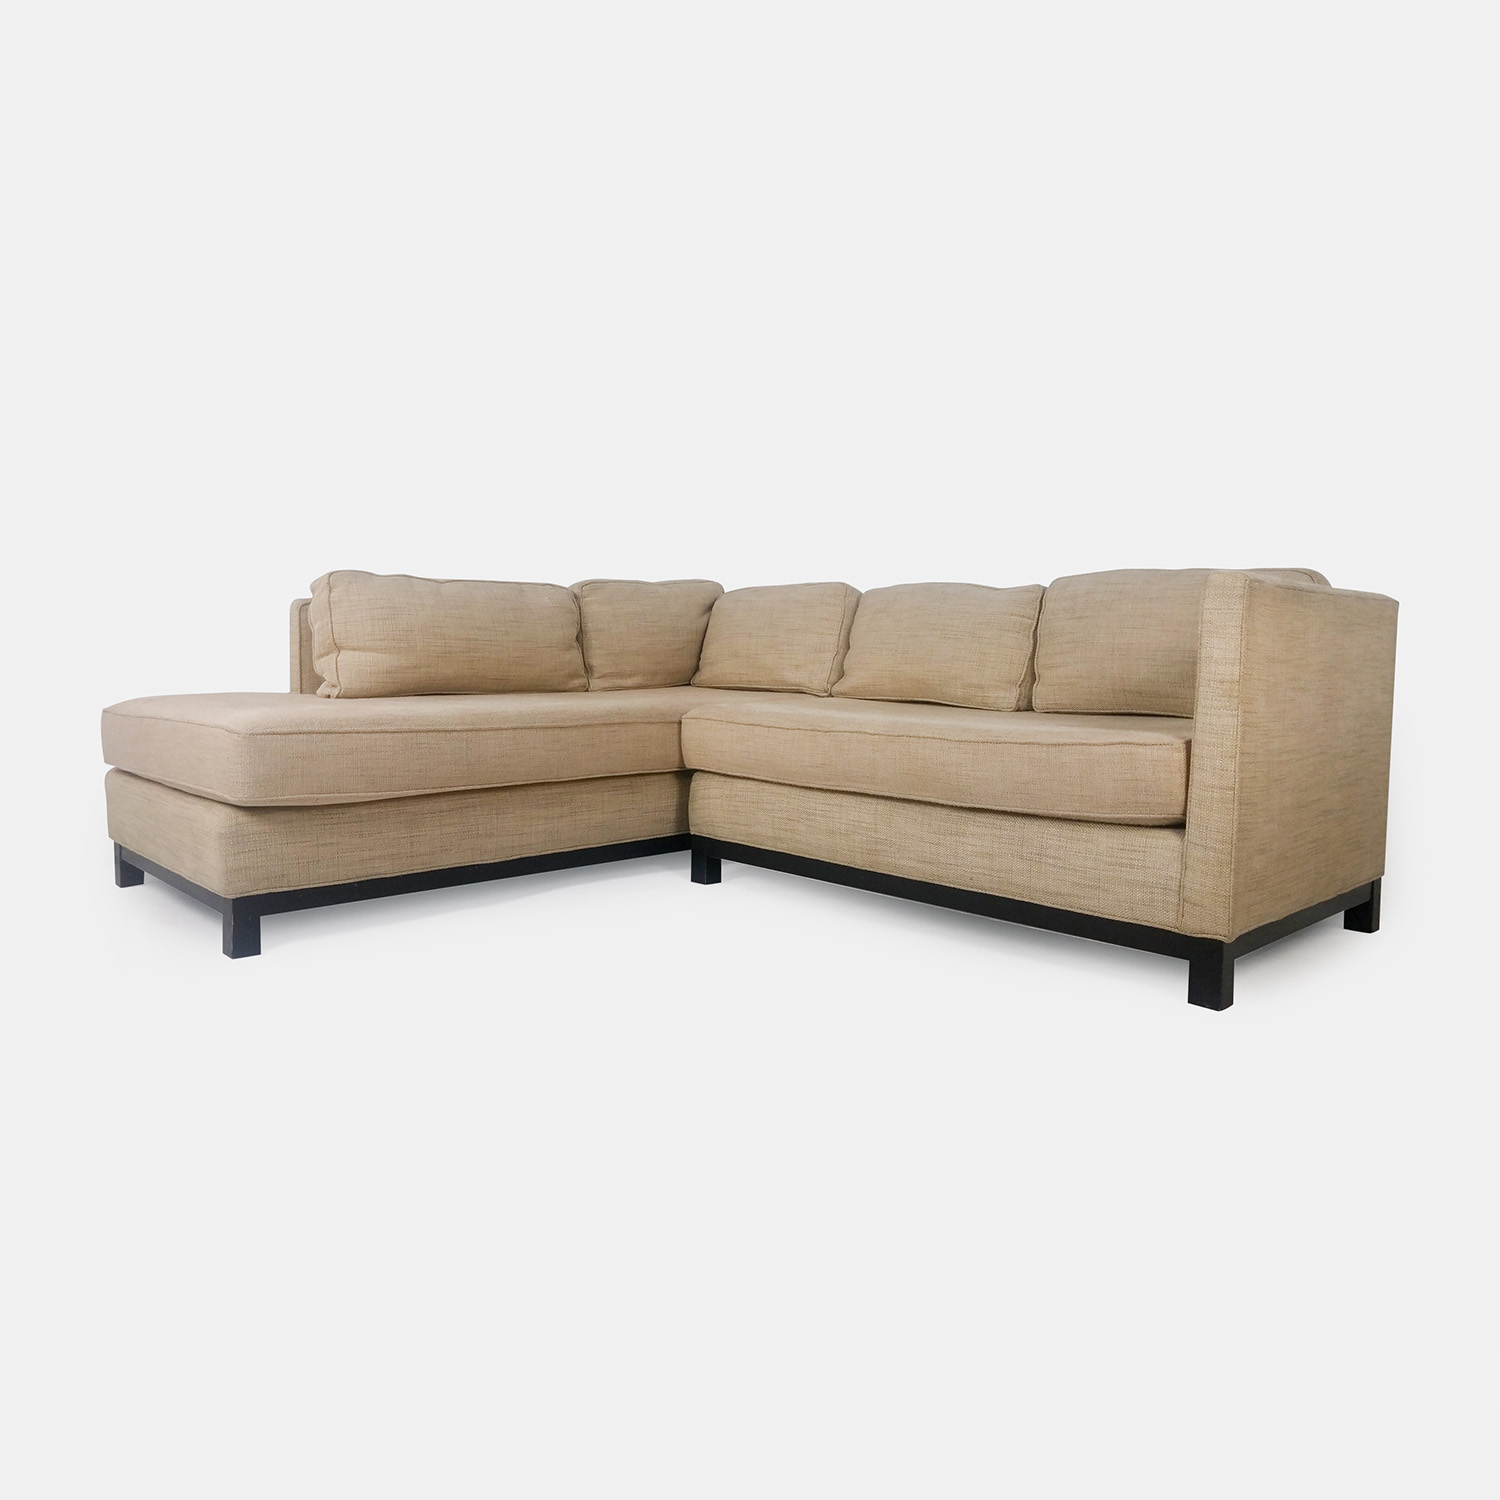 Eck Sofas 51 Off Mitchell Gold Bob Williams Mitchell Gold Beige Sectional Sofas